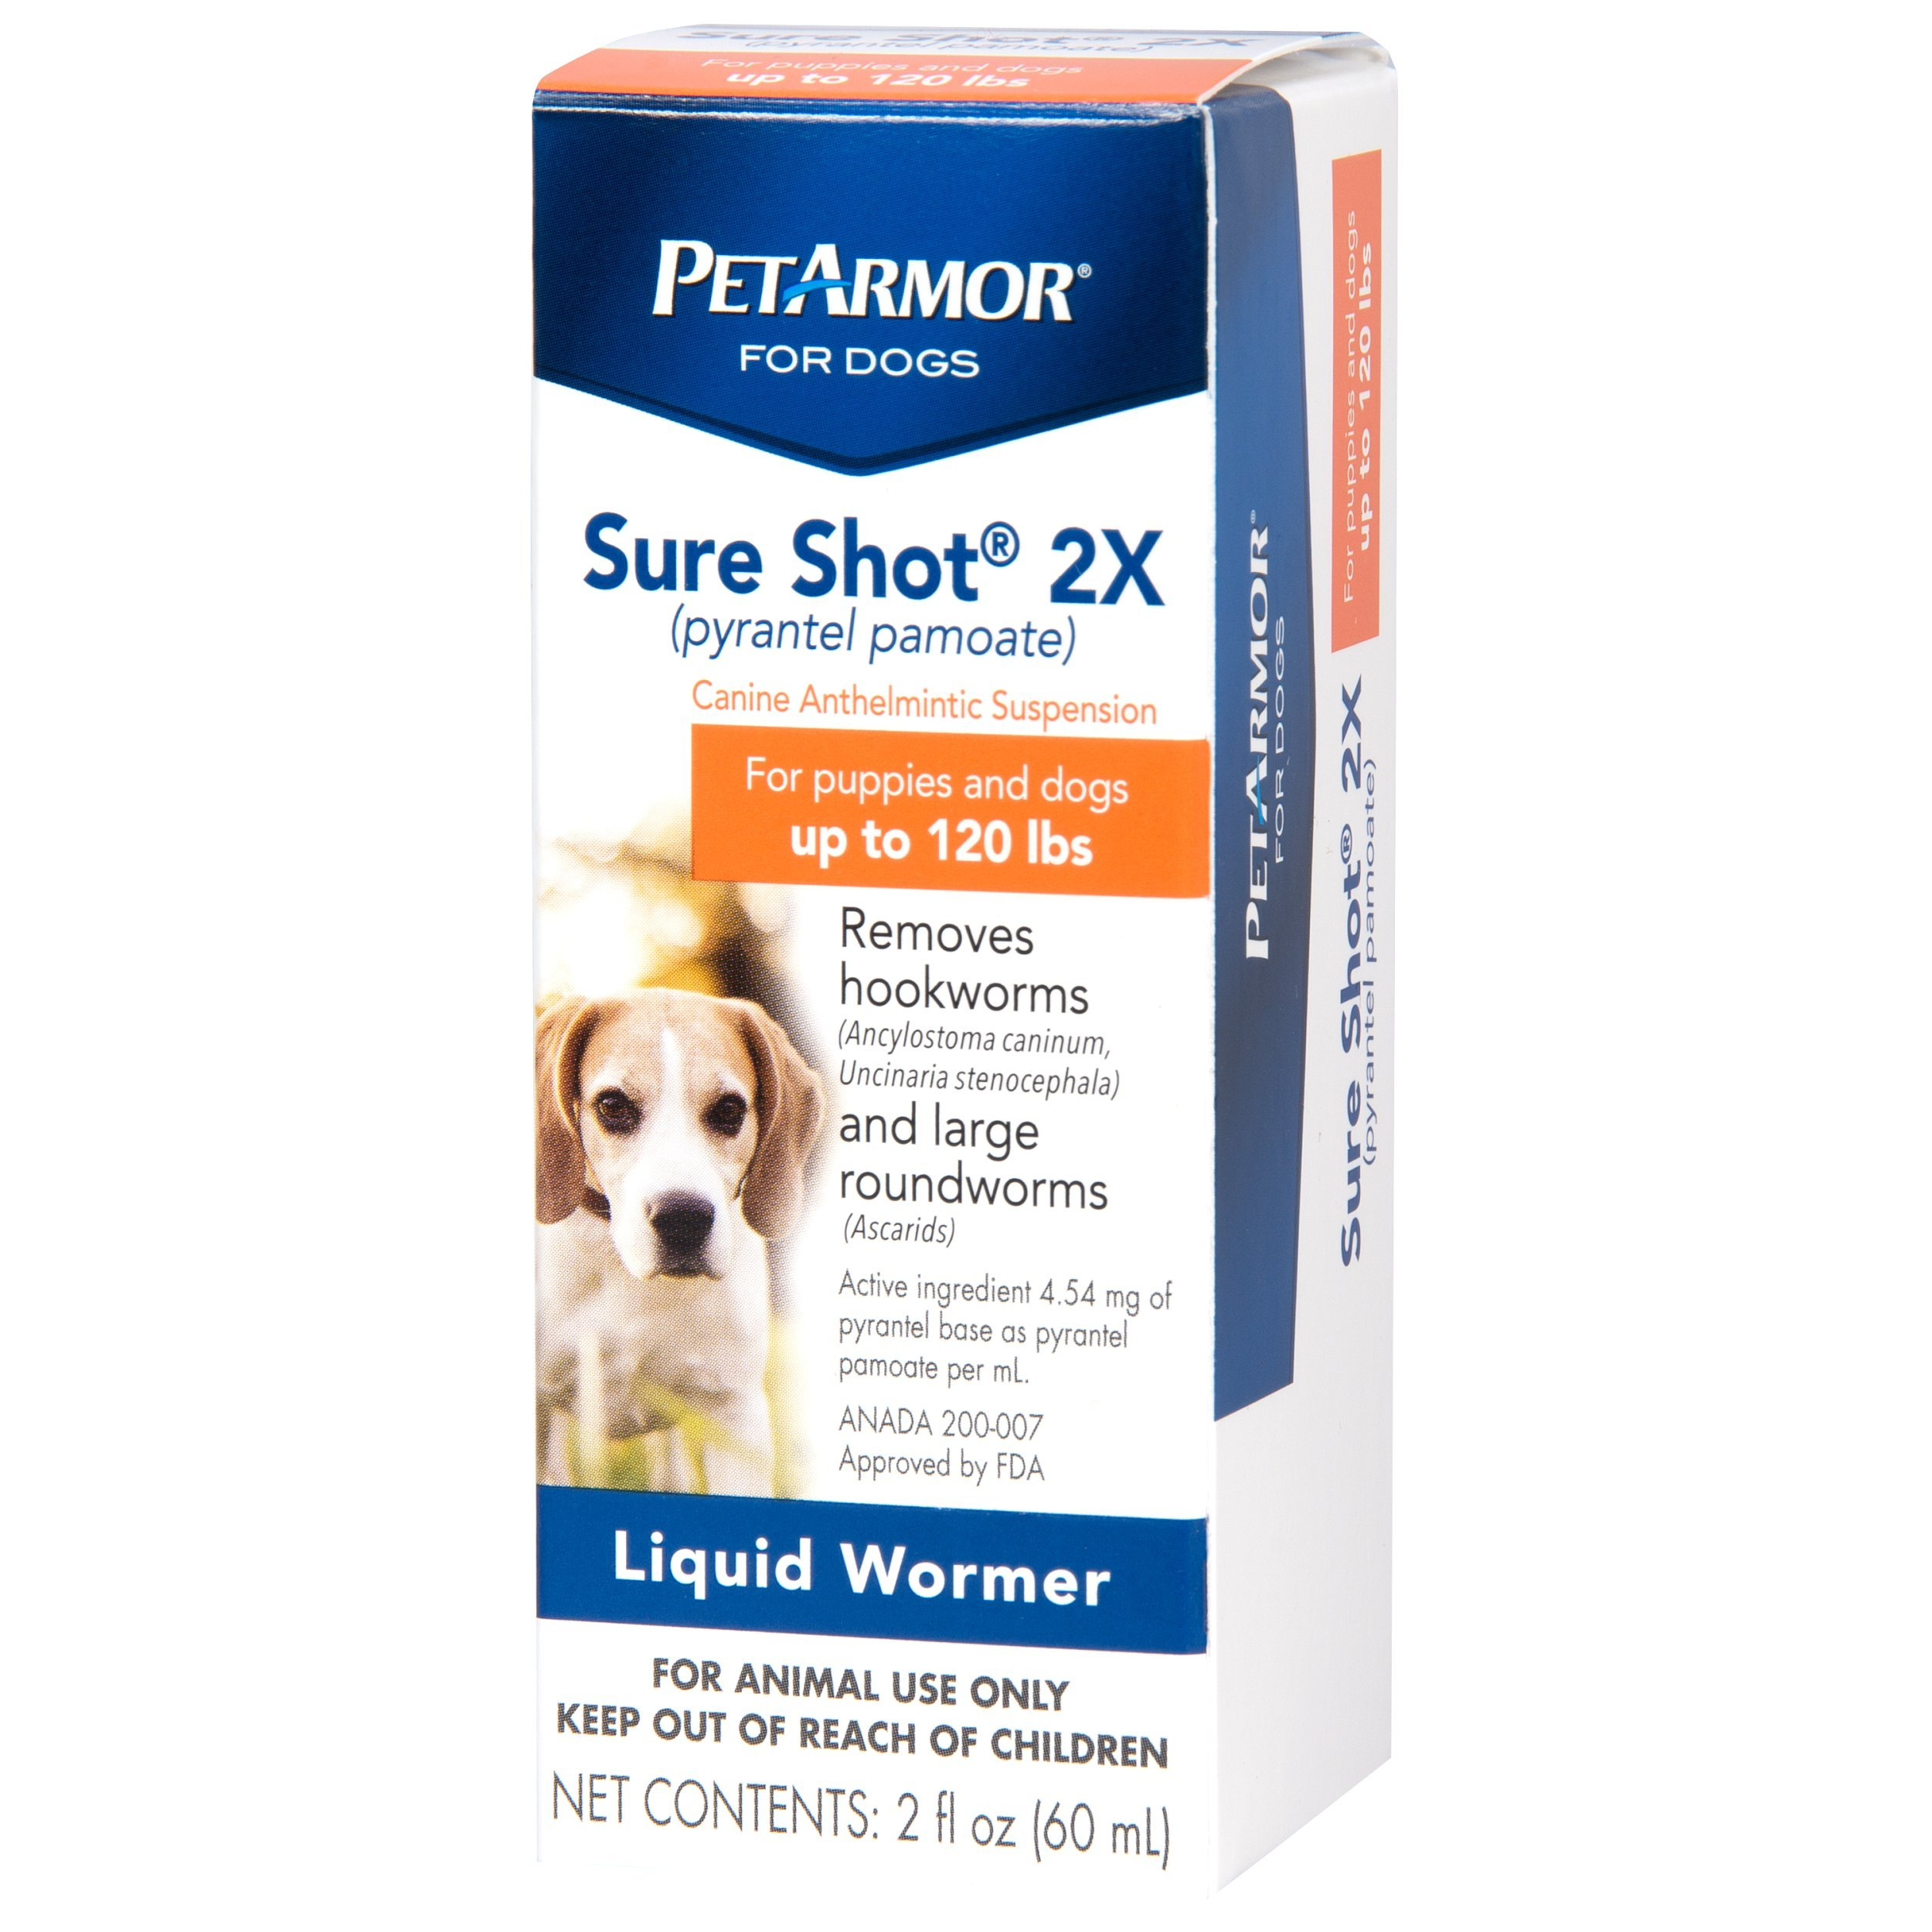 PETARMOR Sure Shot 2X (pyrantel pamoate) Liquid De-wormer for Dogs, 2 Fluid Ounces by PETARMOR